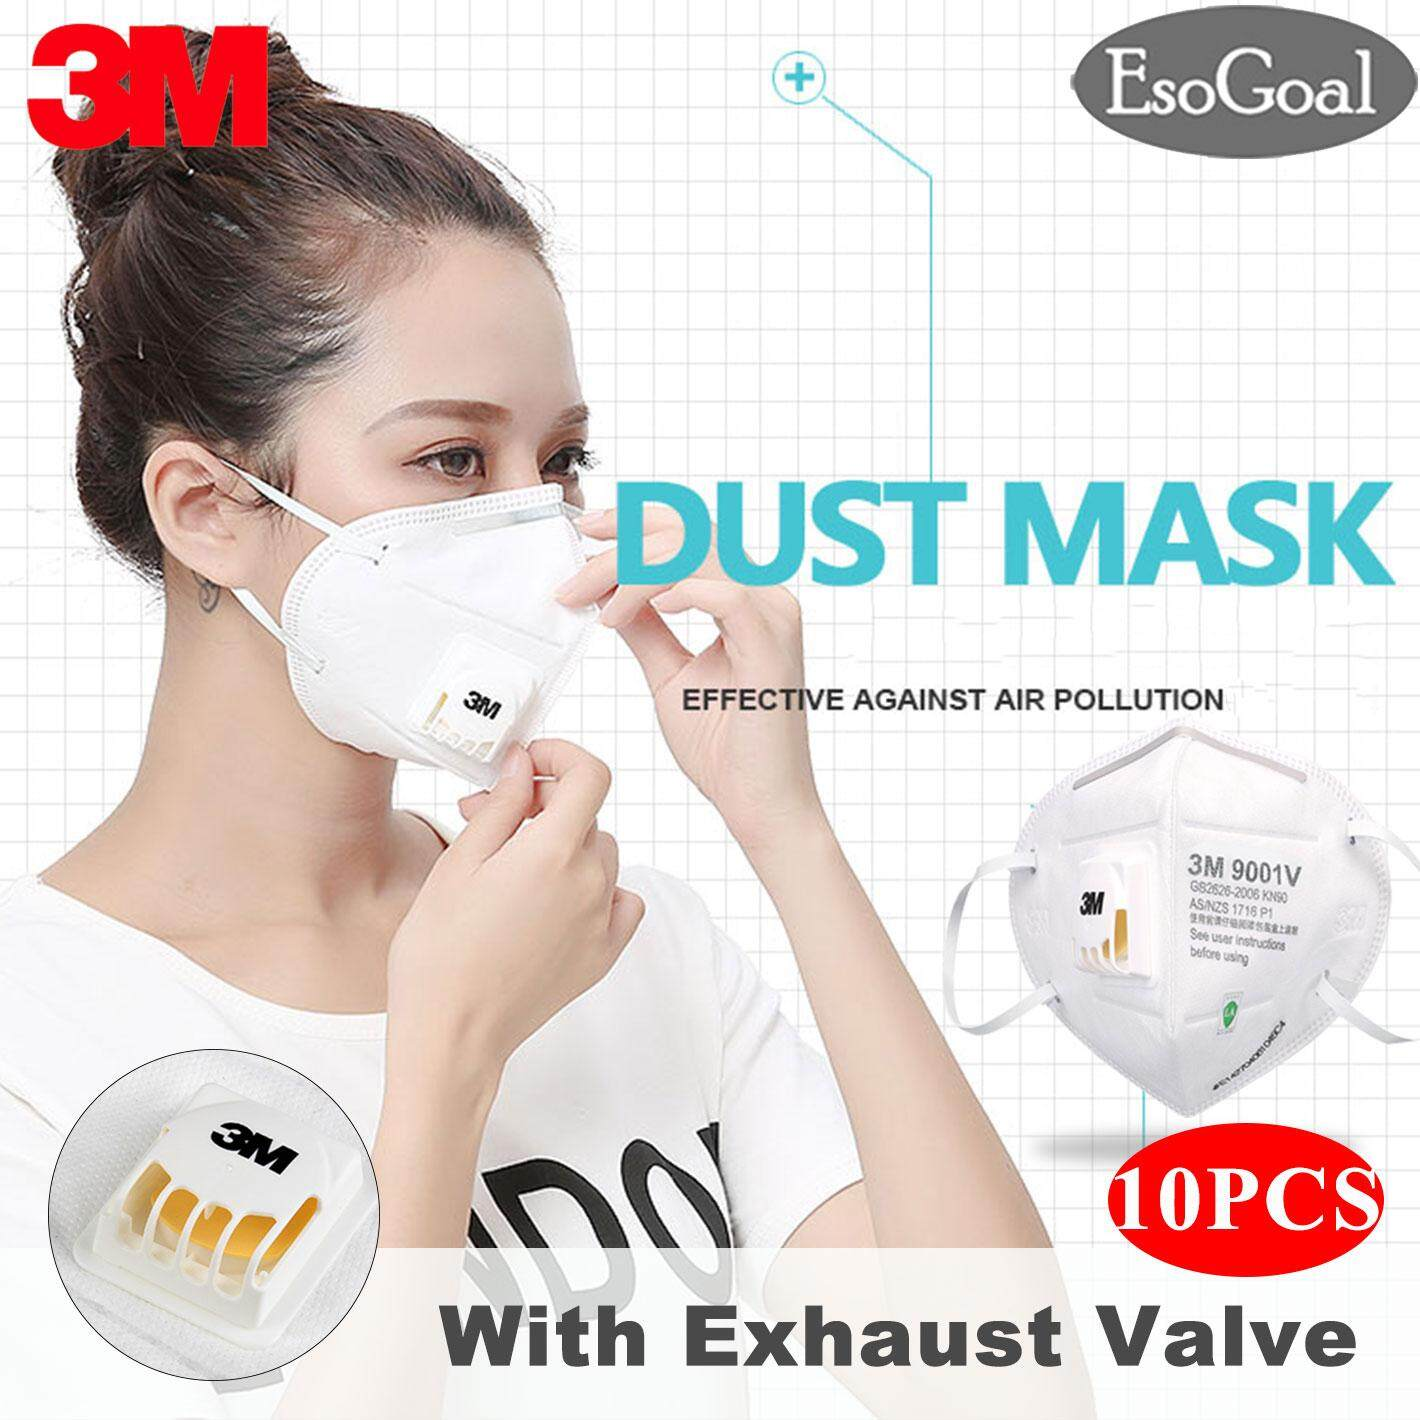 Esogoal 10 Pcs/20 Pcs 3m 9001v Mouth Face Mask Anti-Fog Anti Pm 2.5 Respirator Anti Dust Haze Disposable Particulate Mask Respirator Ear Wearing N90 Level For Men Women By Esogoal.